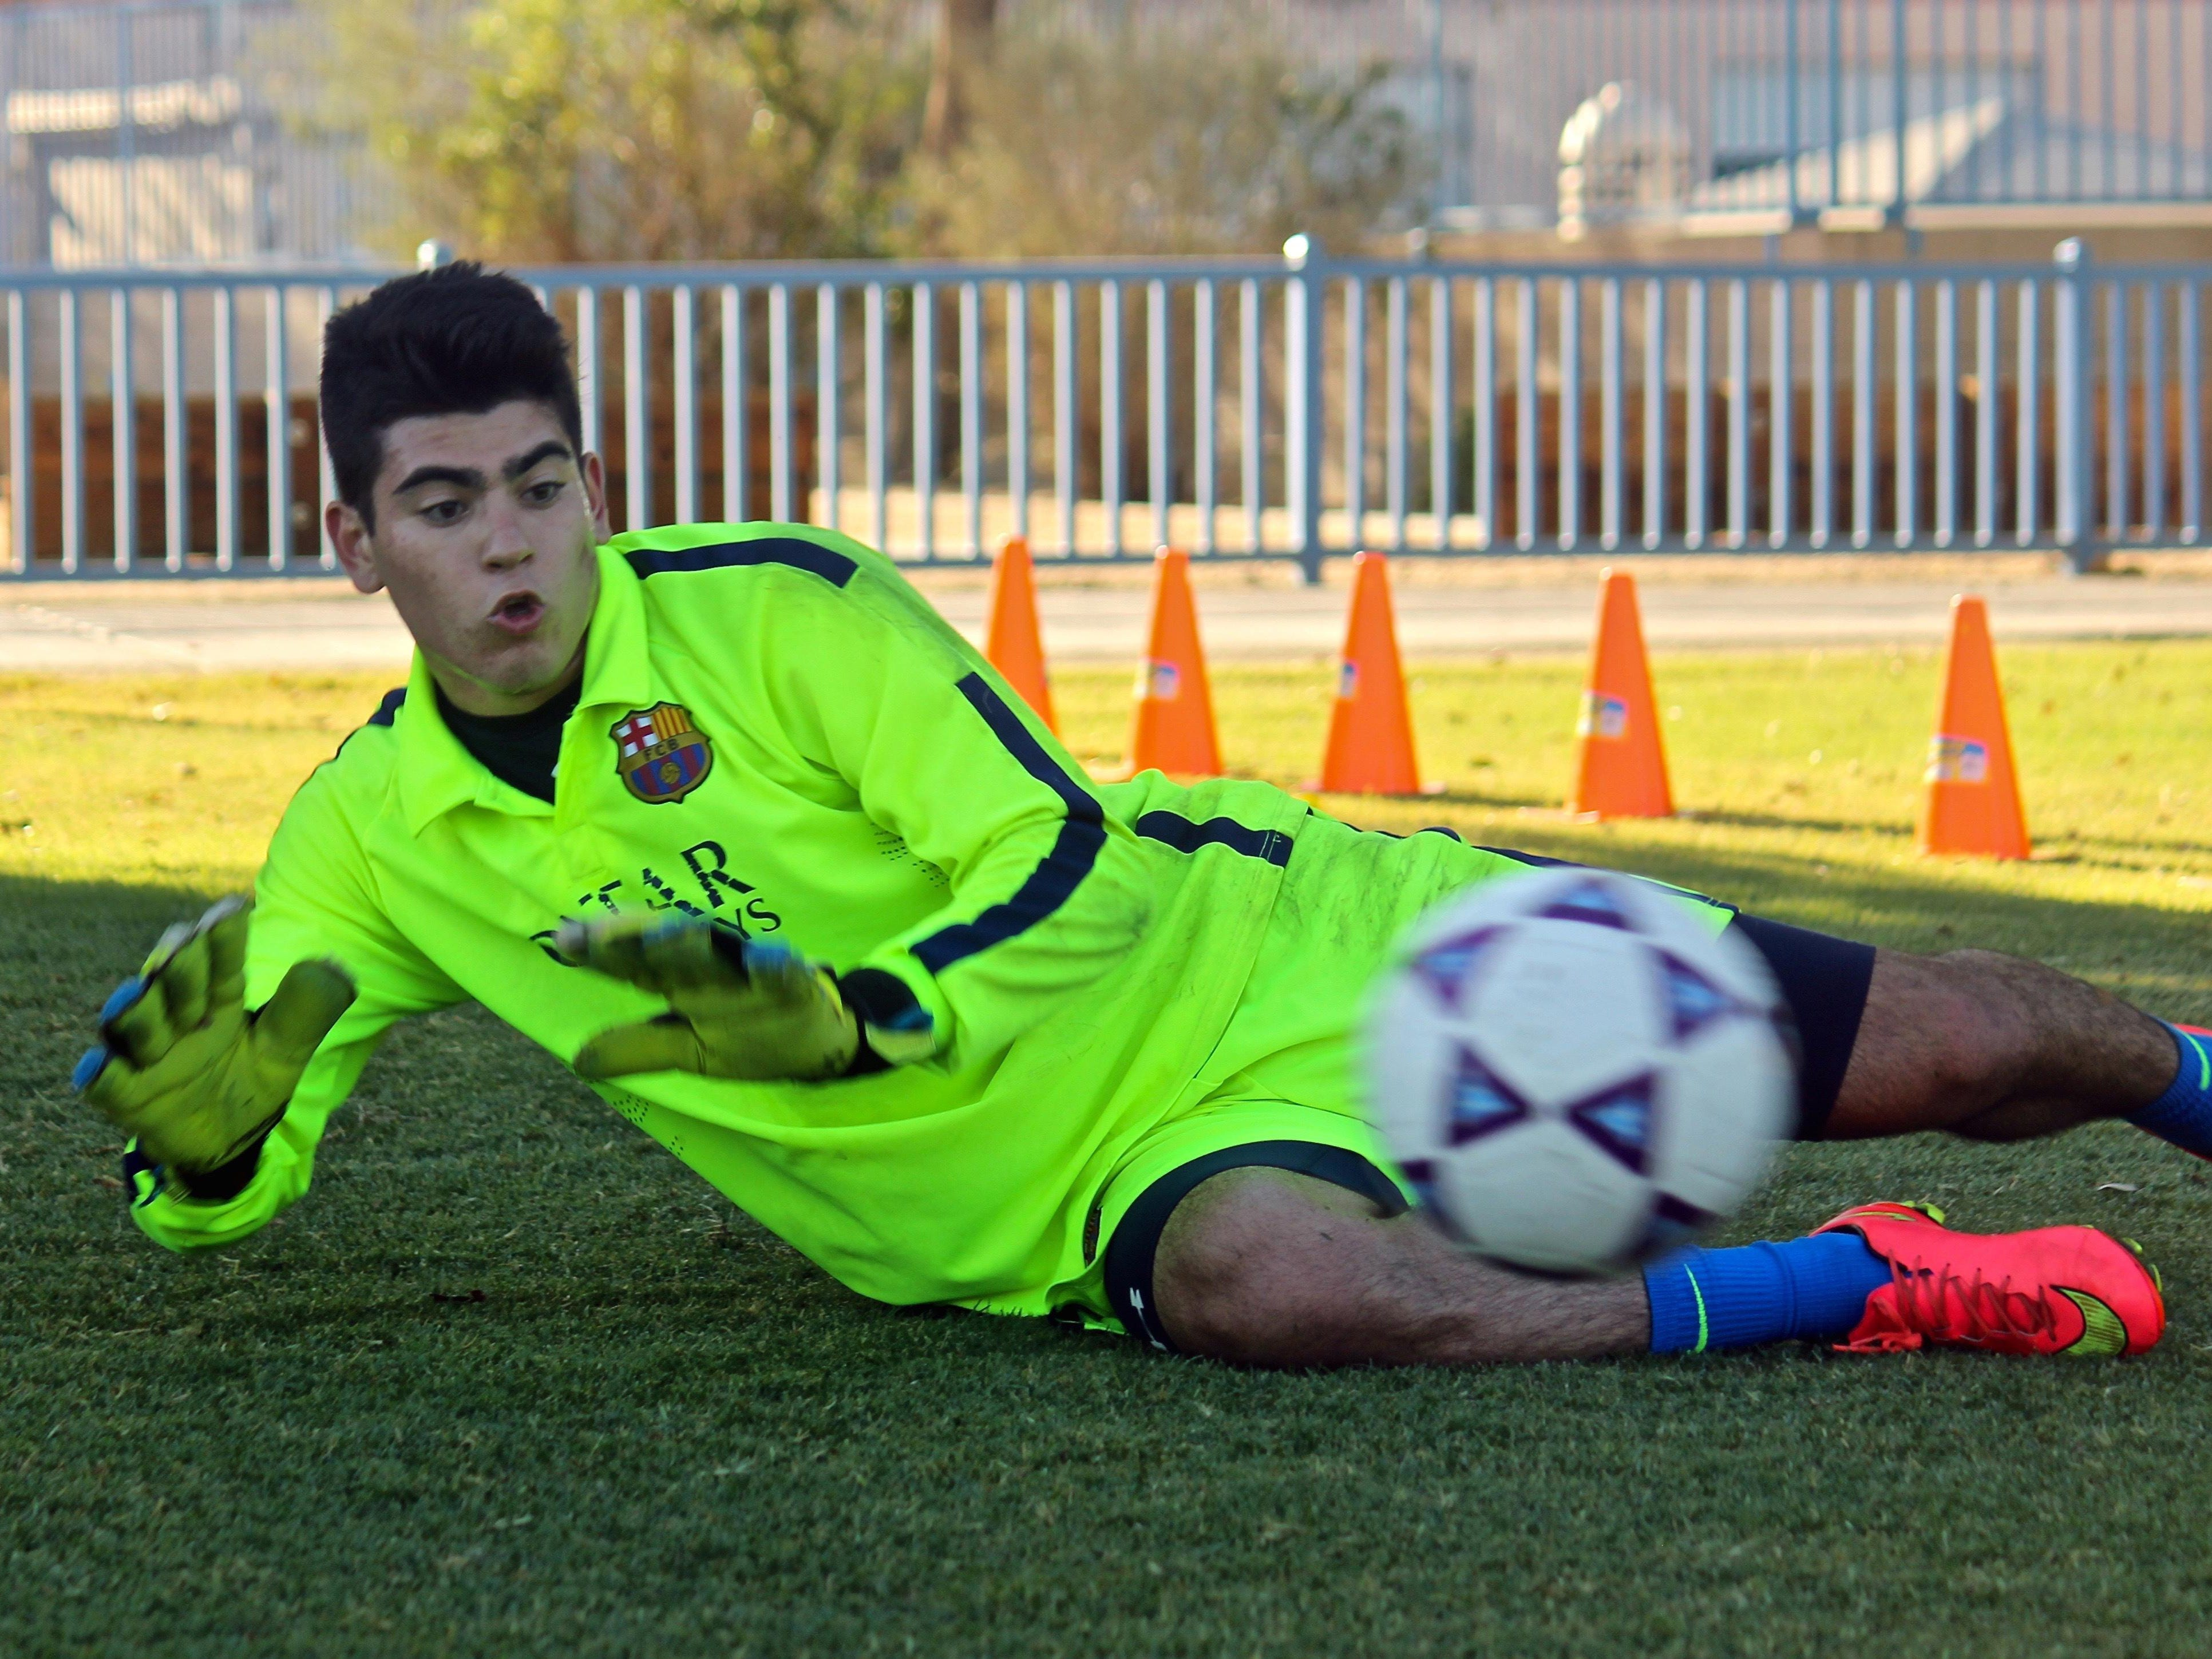 Daniel Rivera practices at the Hovley Soccer Park in Palm Desert, on Tuesday. Rivera has a soccer tryout on Saturday that will determine if he is qualified to join Chivas Guadalajara's Development Program.